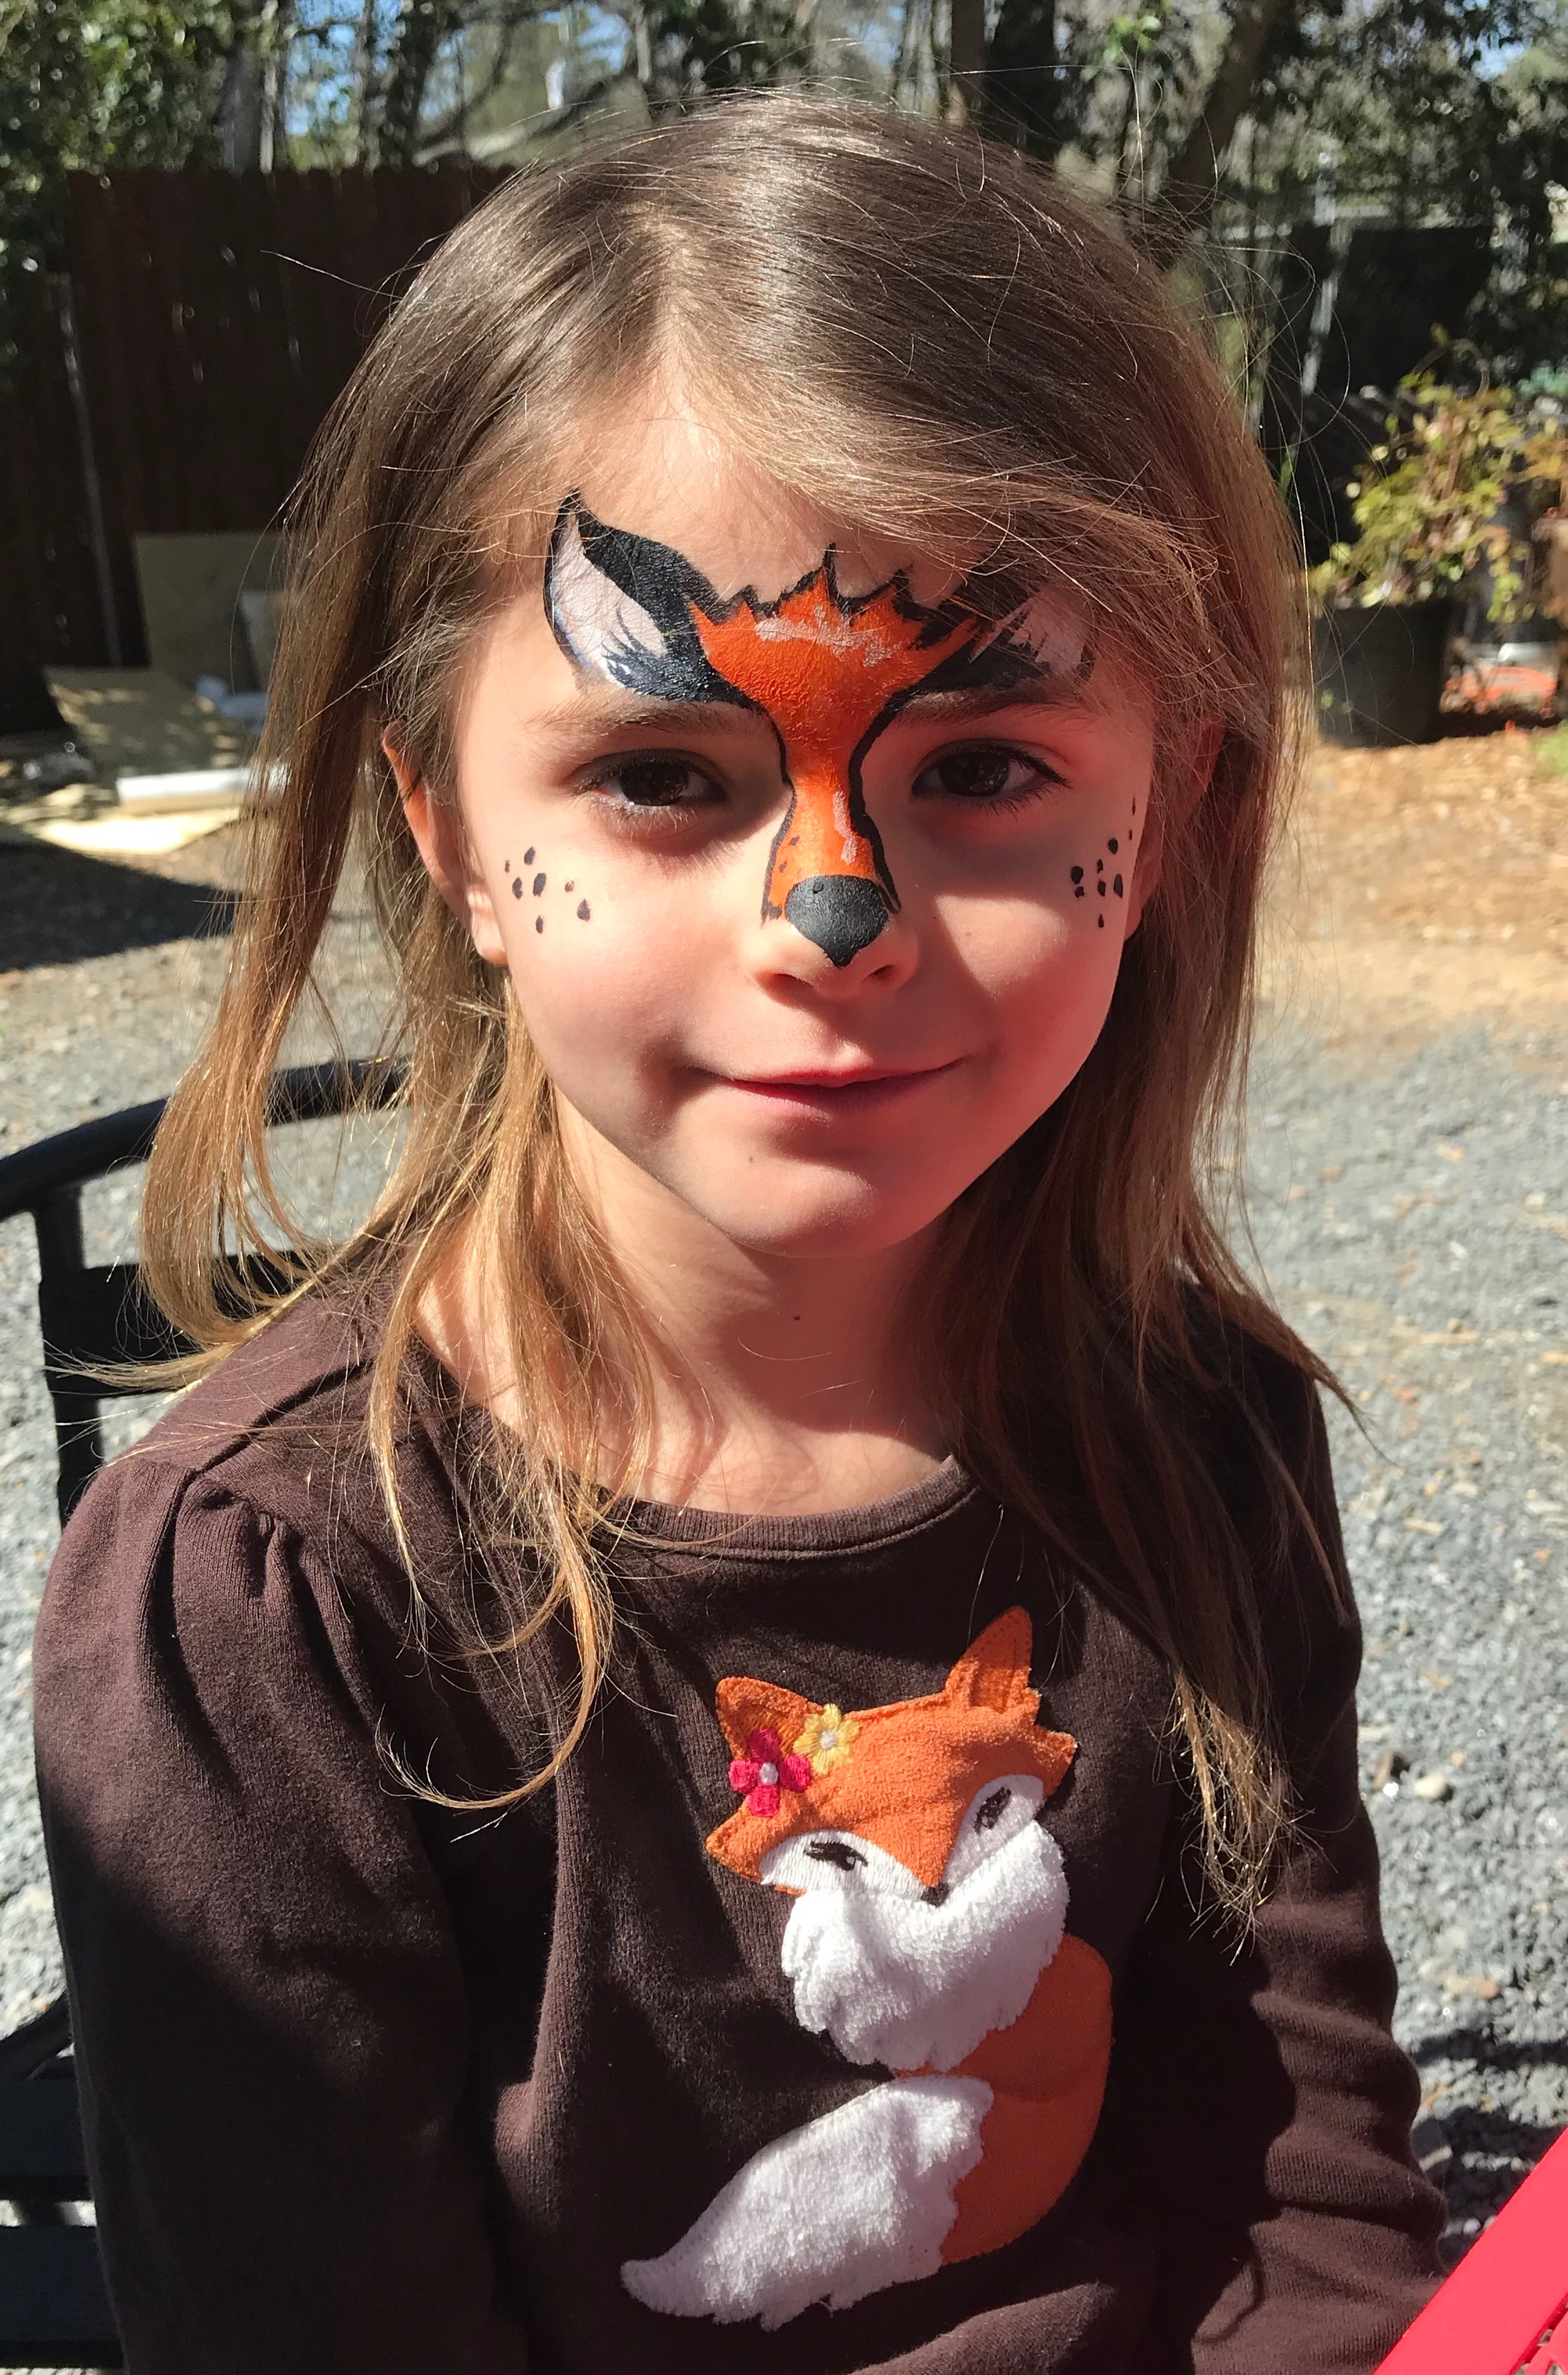 Large Event - 100+kidscan paint 40 kids/hr$70/hr includes:2 professional face painters1 personal assistanthigh quality face paint and suppliestable and chairsbright blue event tent if needed*$25 travel fee if event is outside of Macon within 100miles2hr minimum